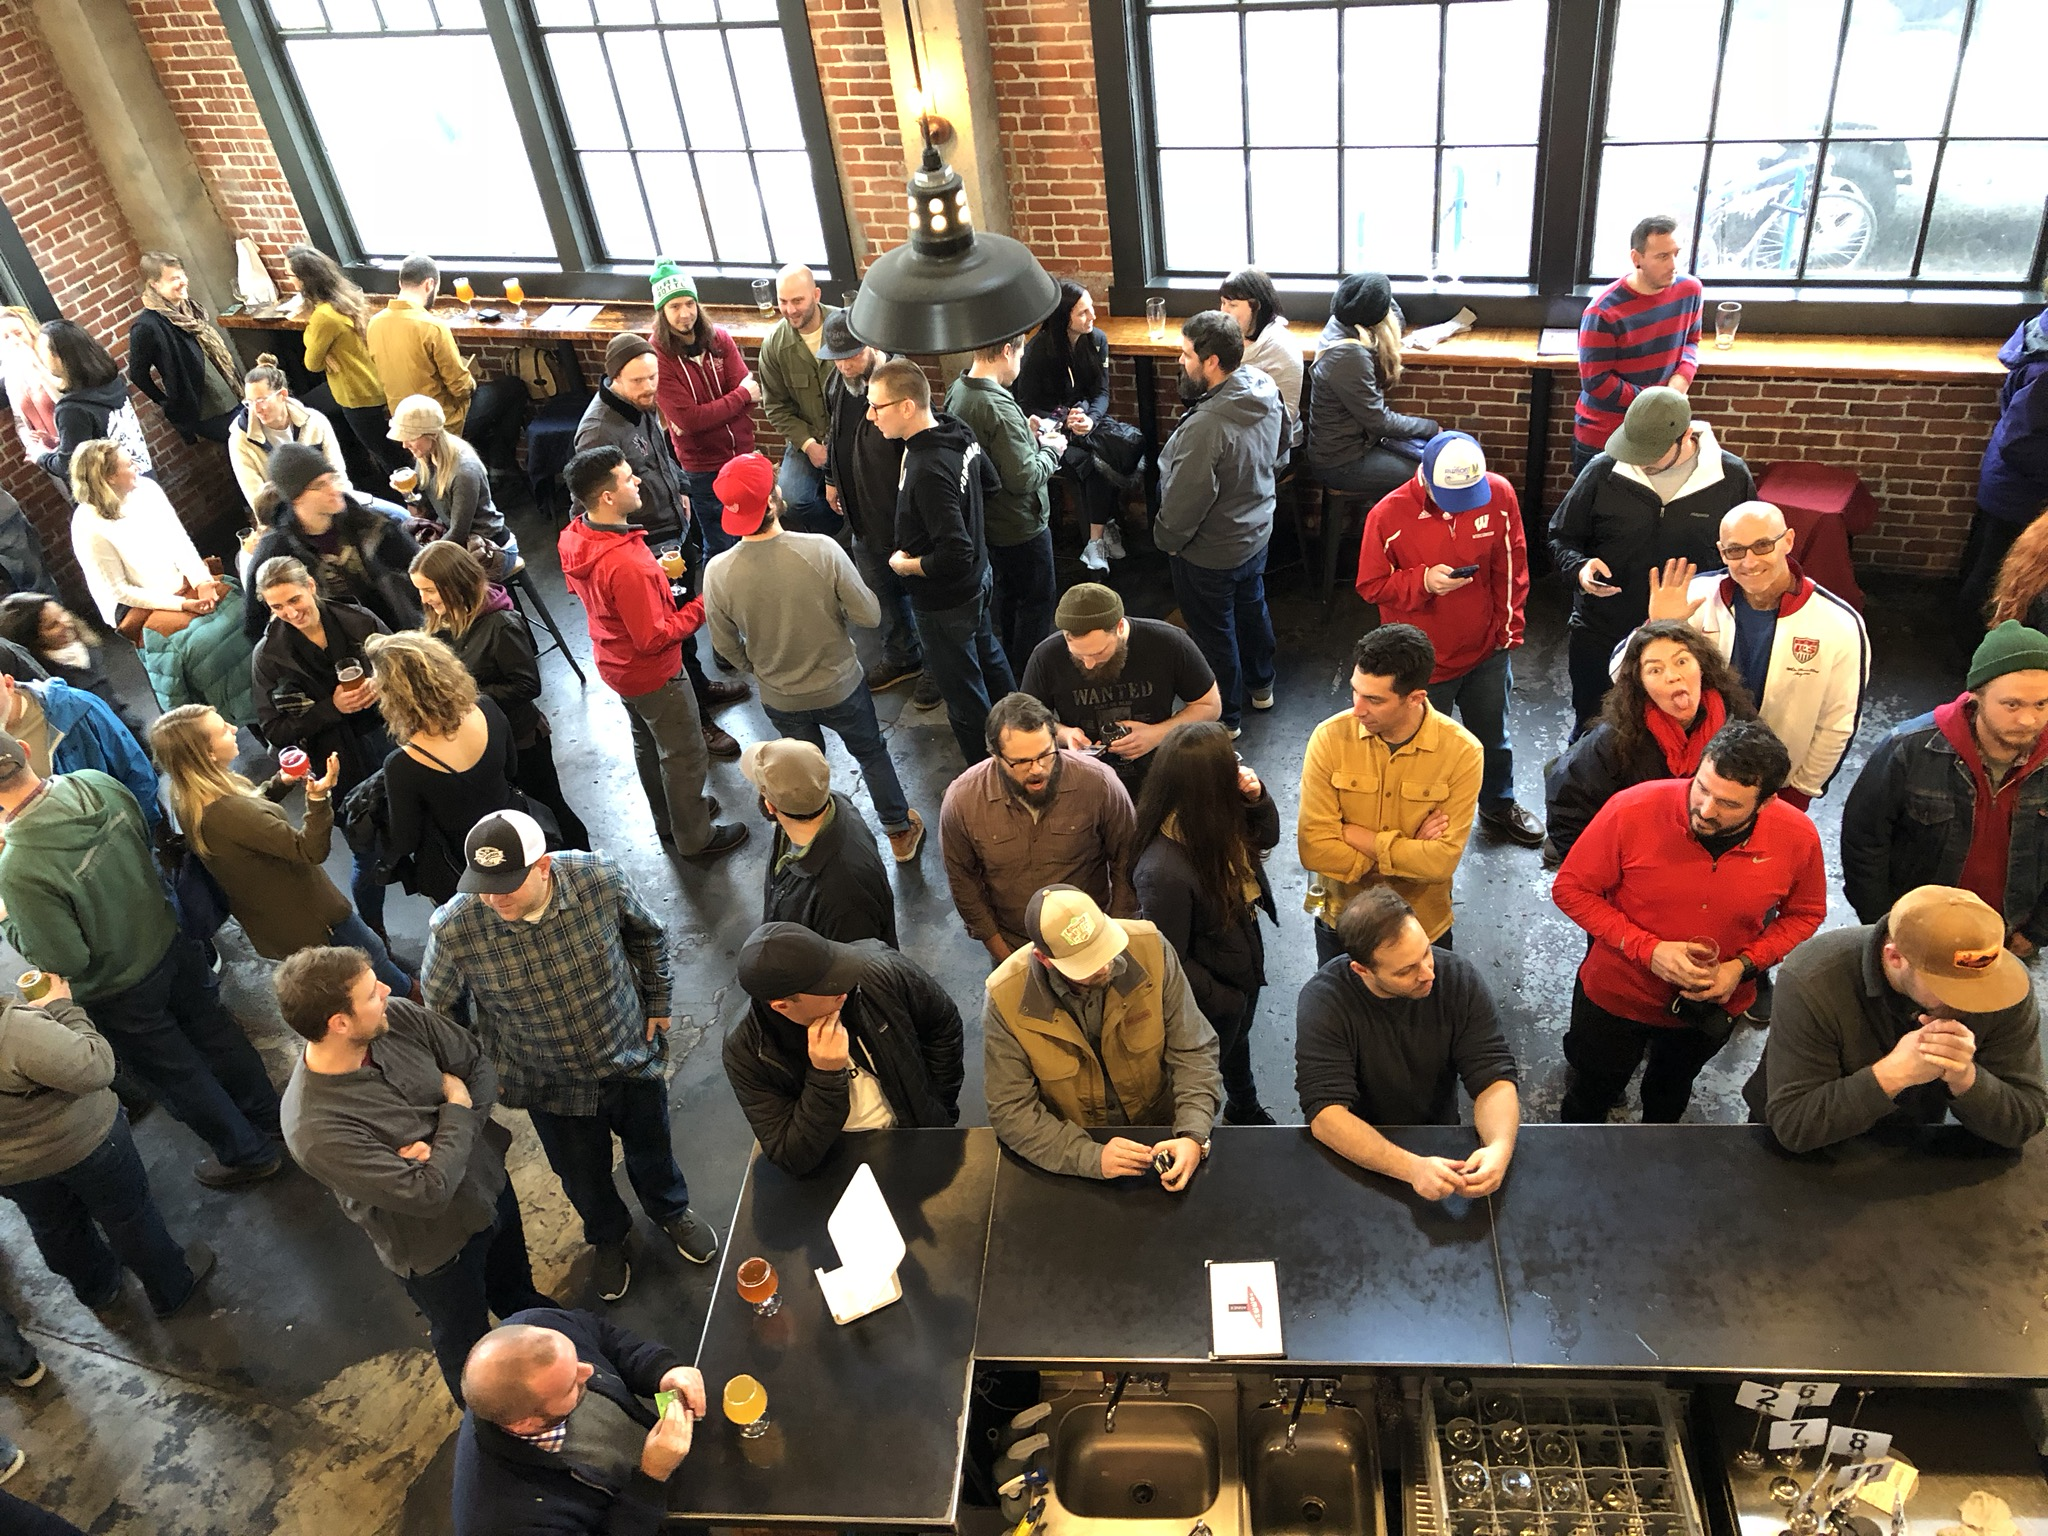 The turnout was strong on the last day of The Commons Brewery. (photo by Cat Stelzer)